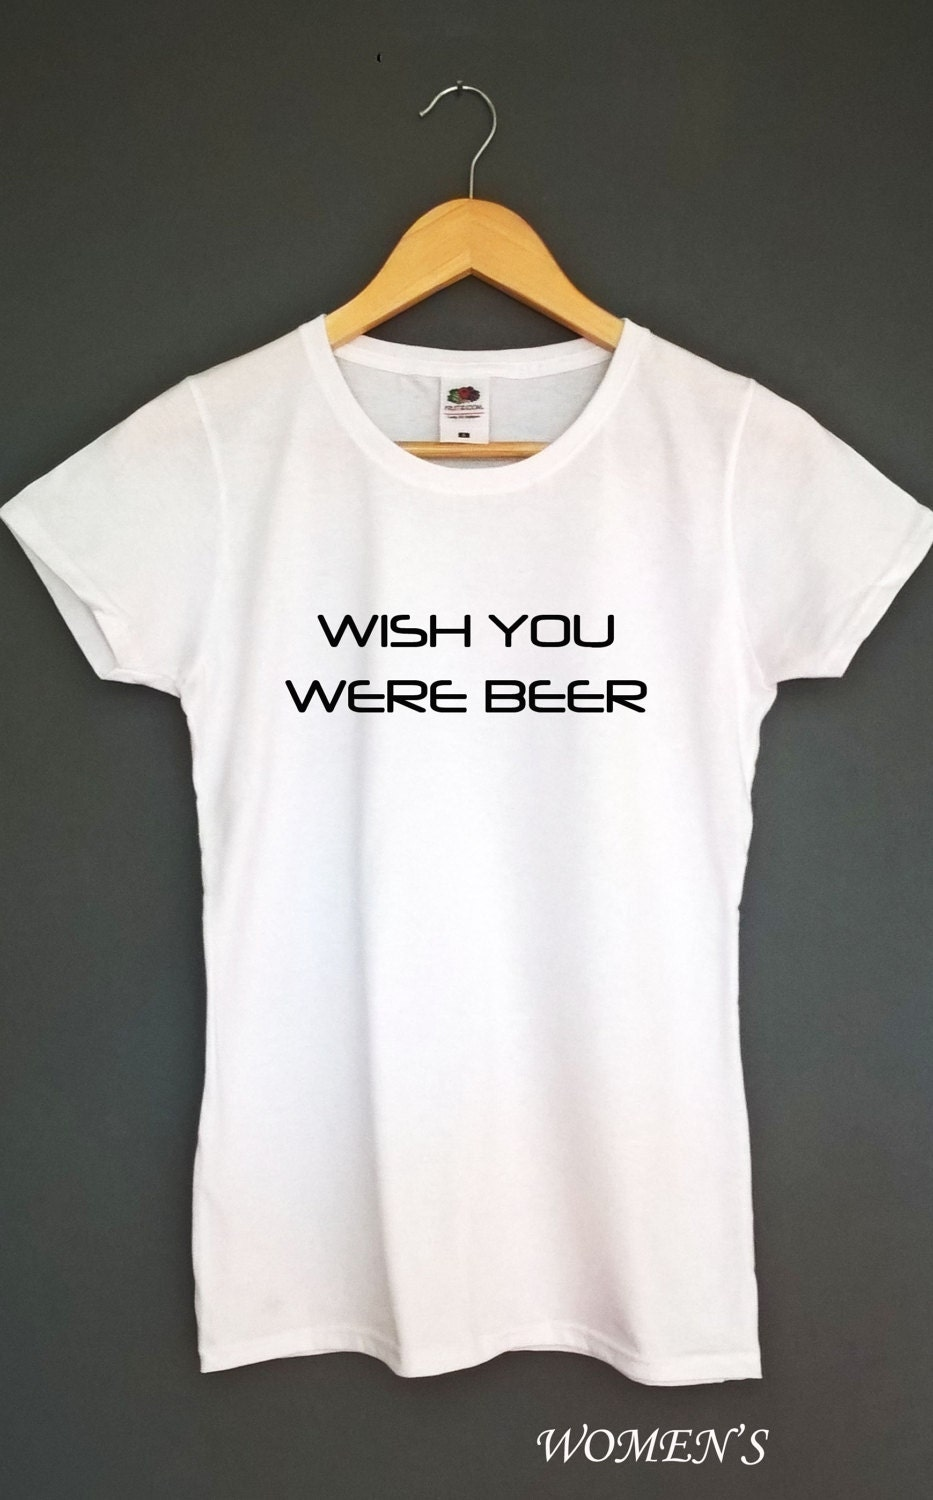 wish you were beer shirt womens clothing womens tshirt beer shirt beer tshirt beer t shirt beer tshirt beer top tee funny shirt funny beer